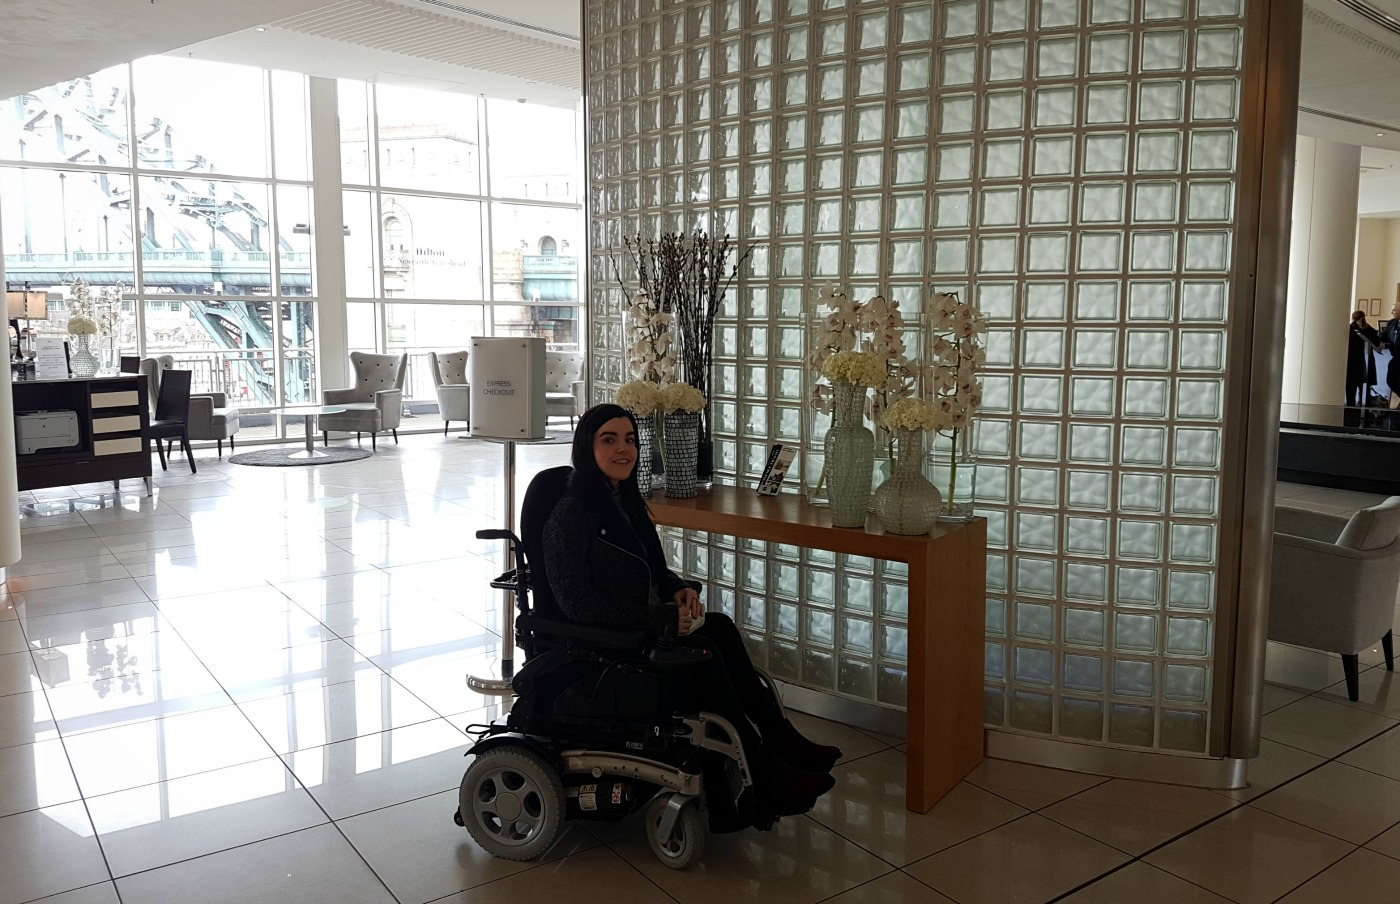 hilton-newcastle-gateshead-wheelchair-accessible-hotel